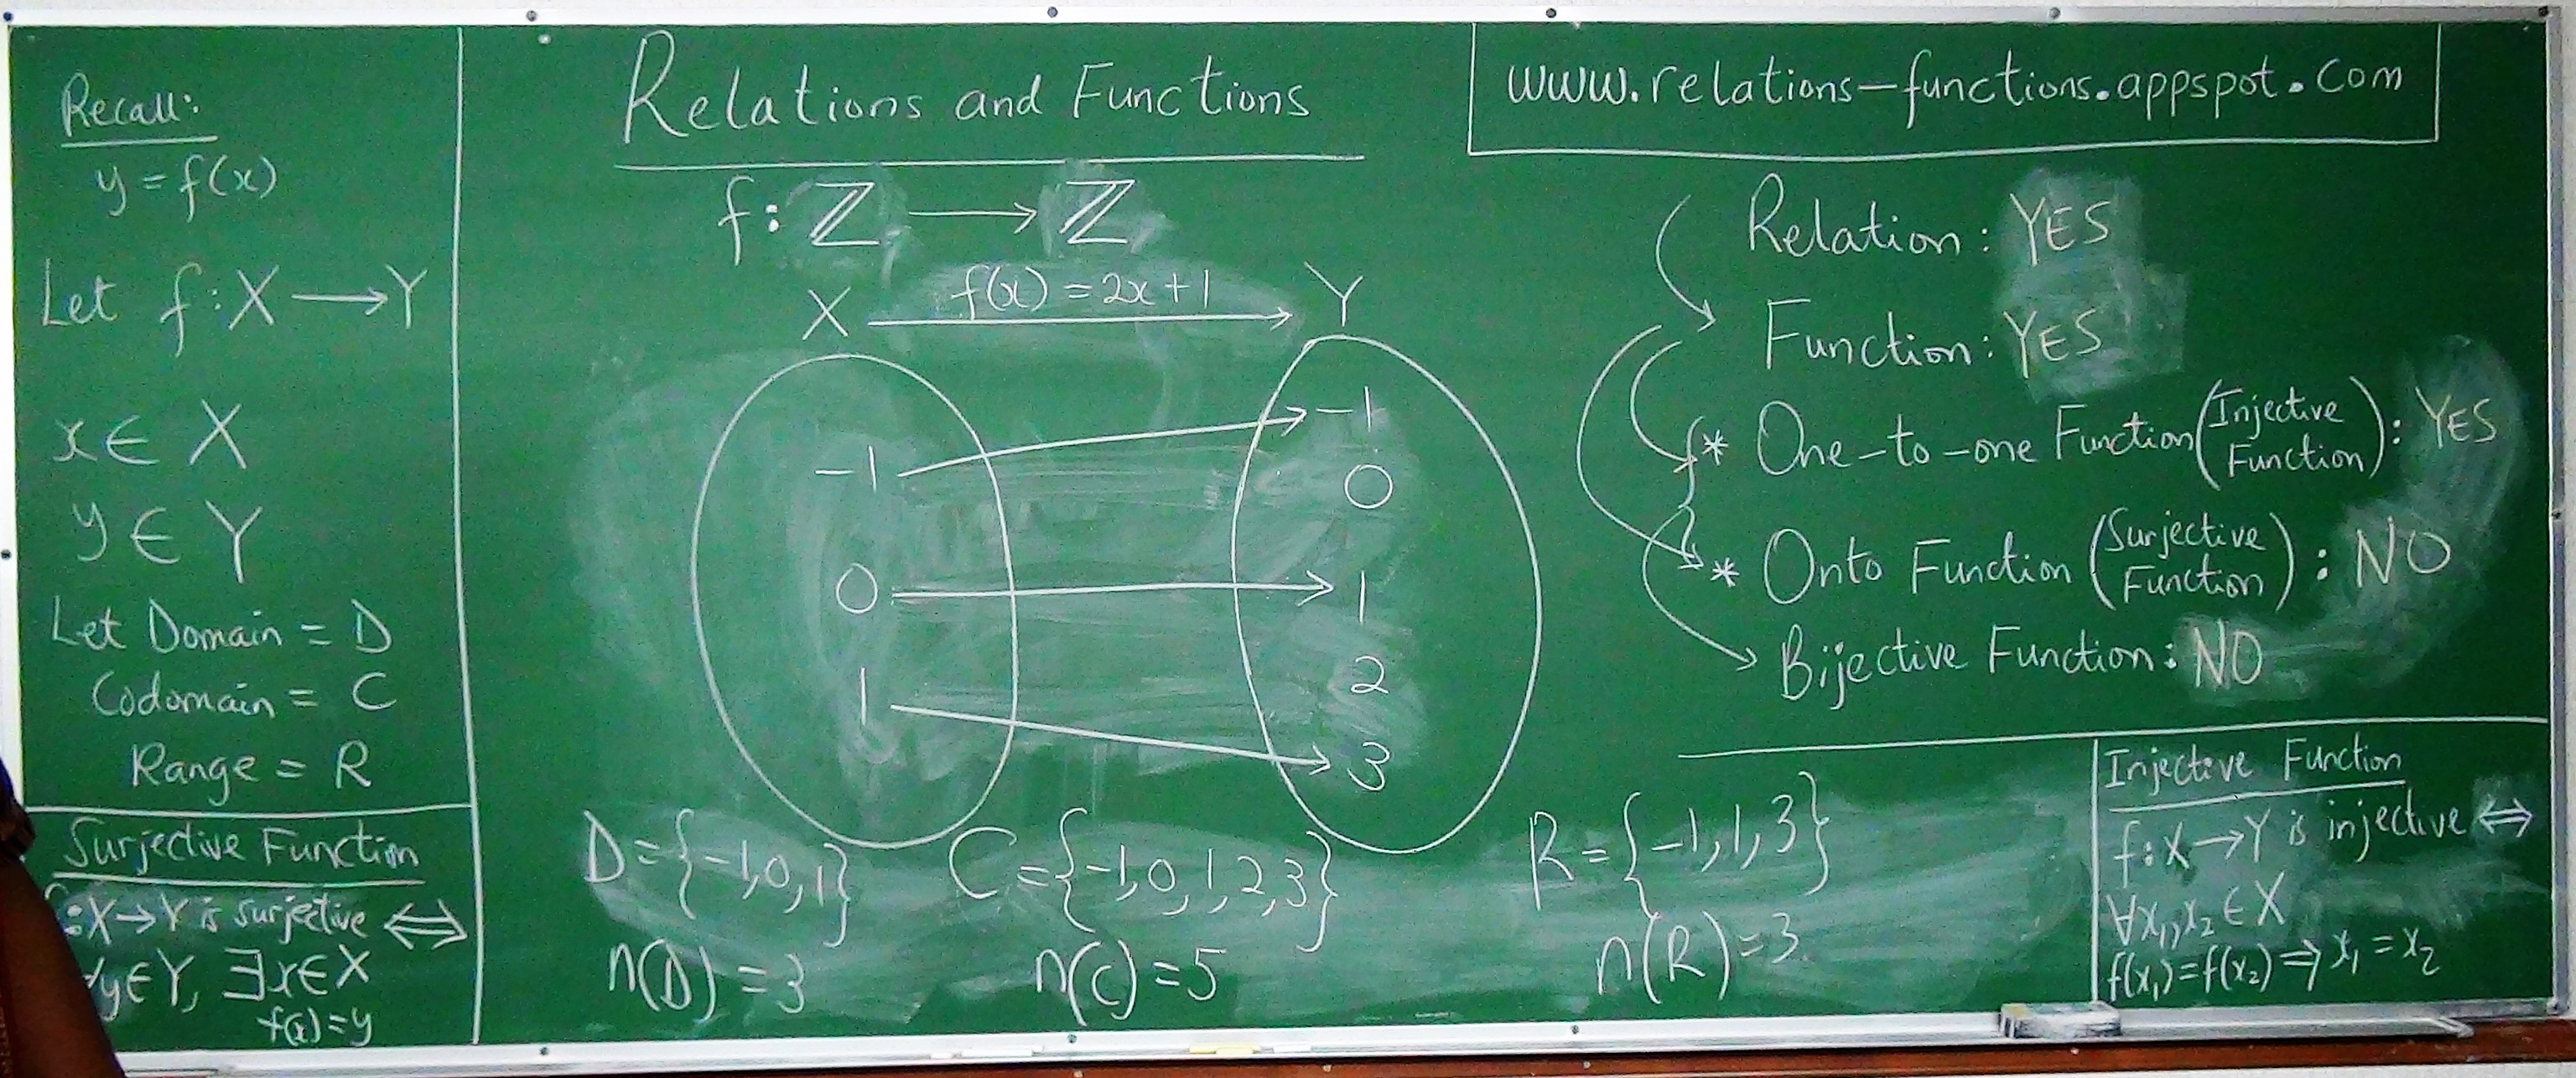 Relations and Functions 7